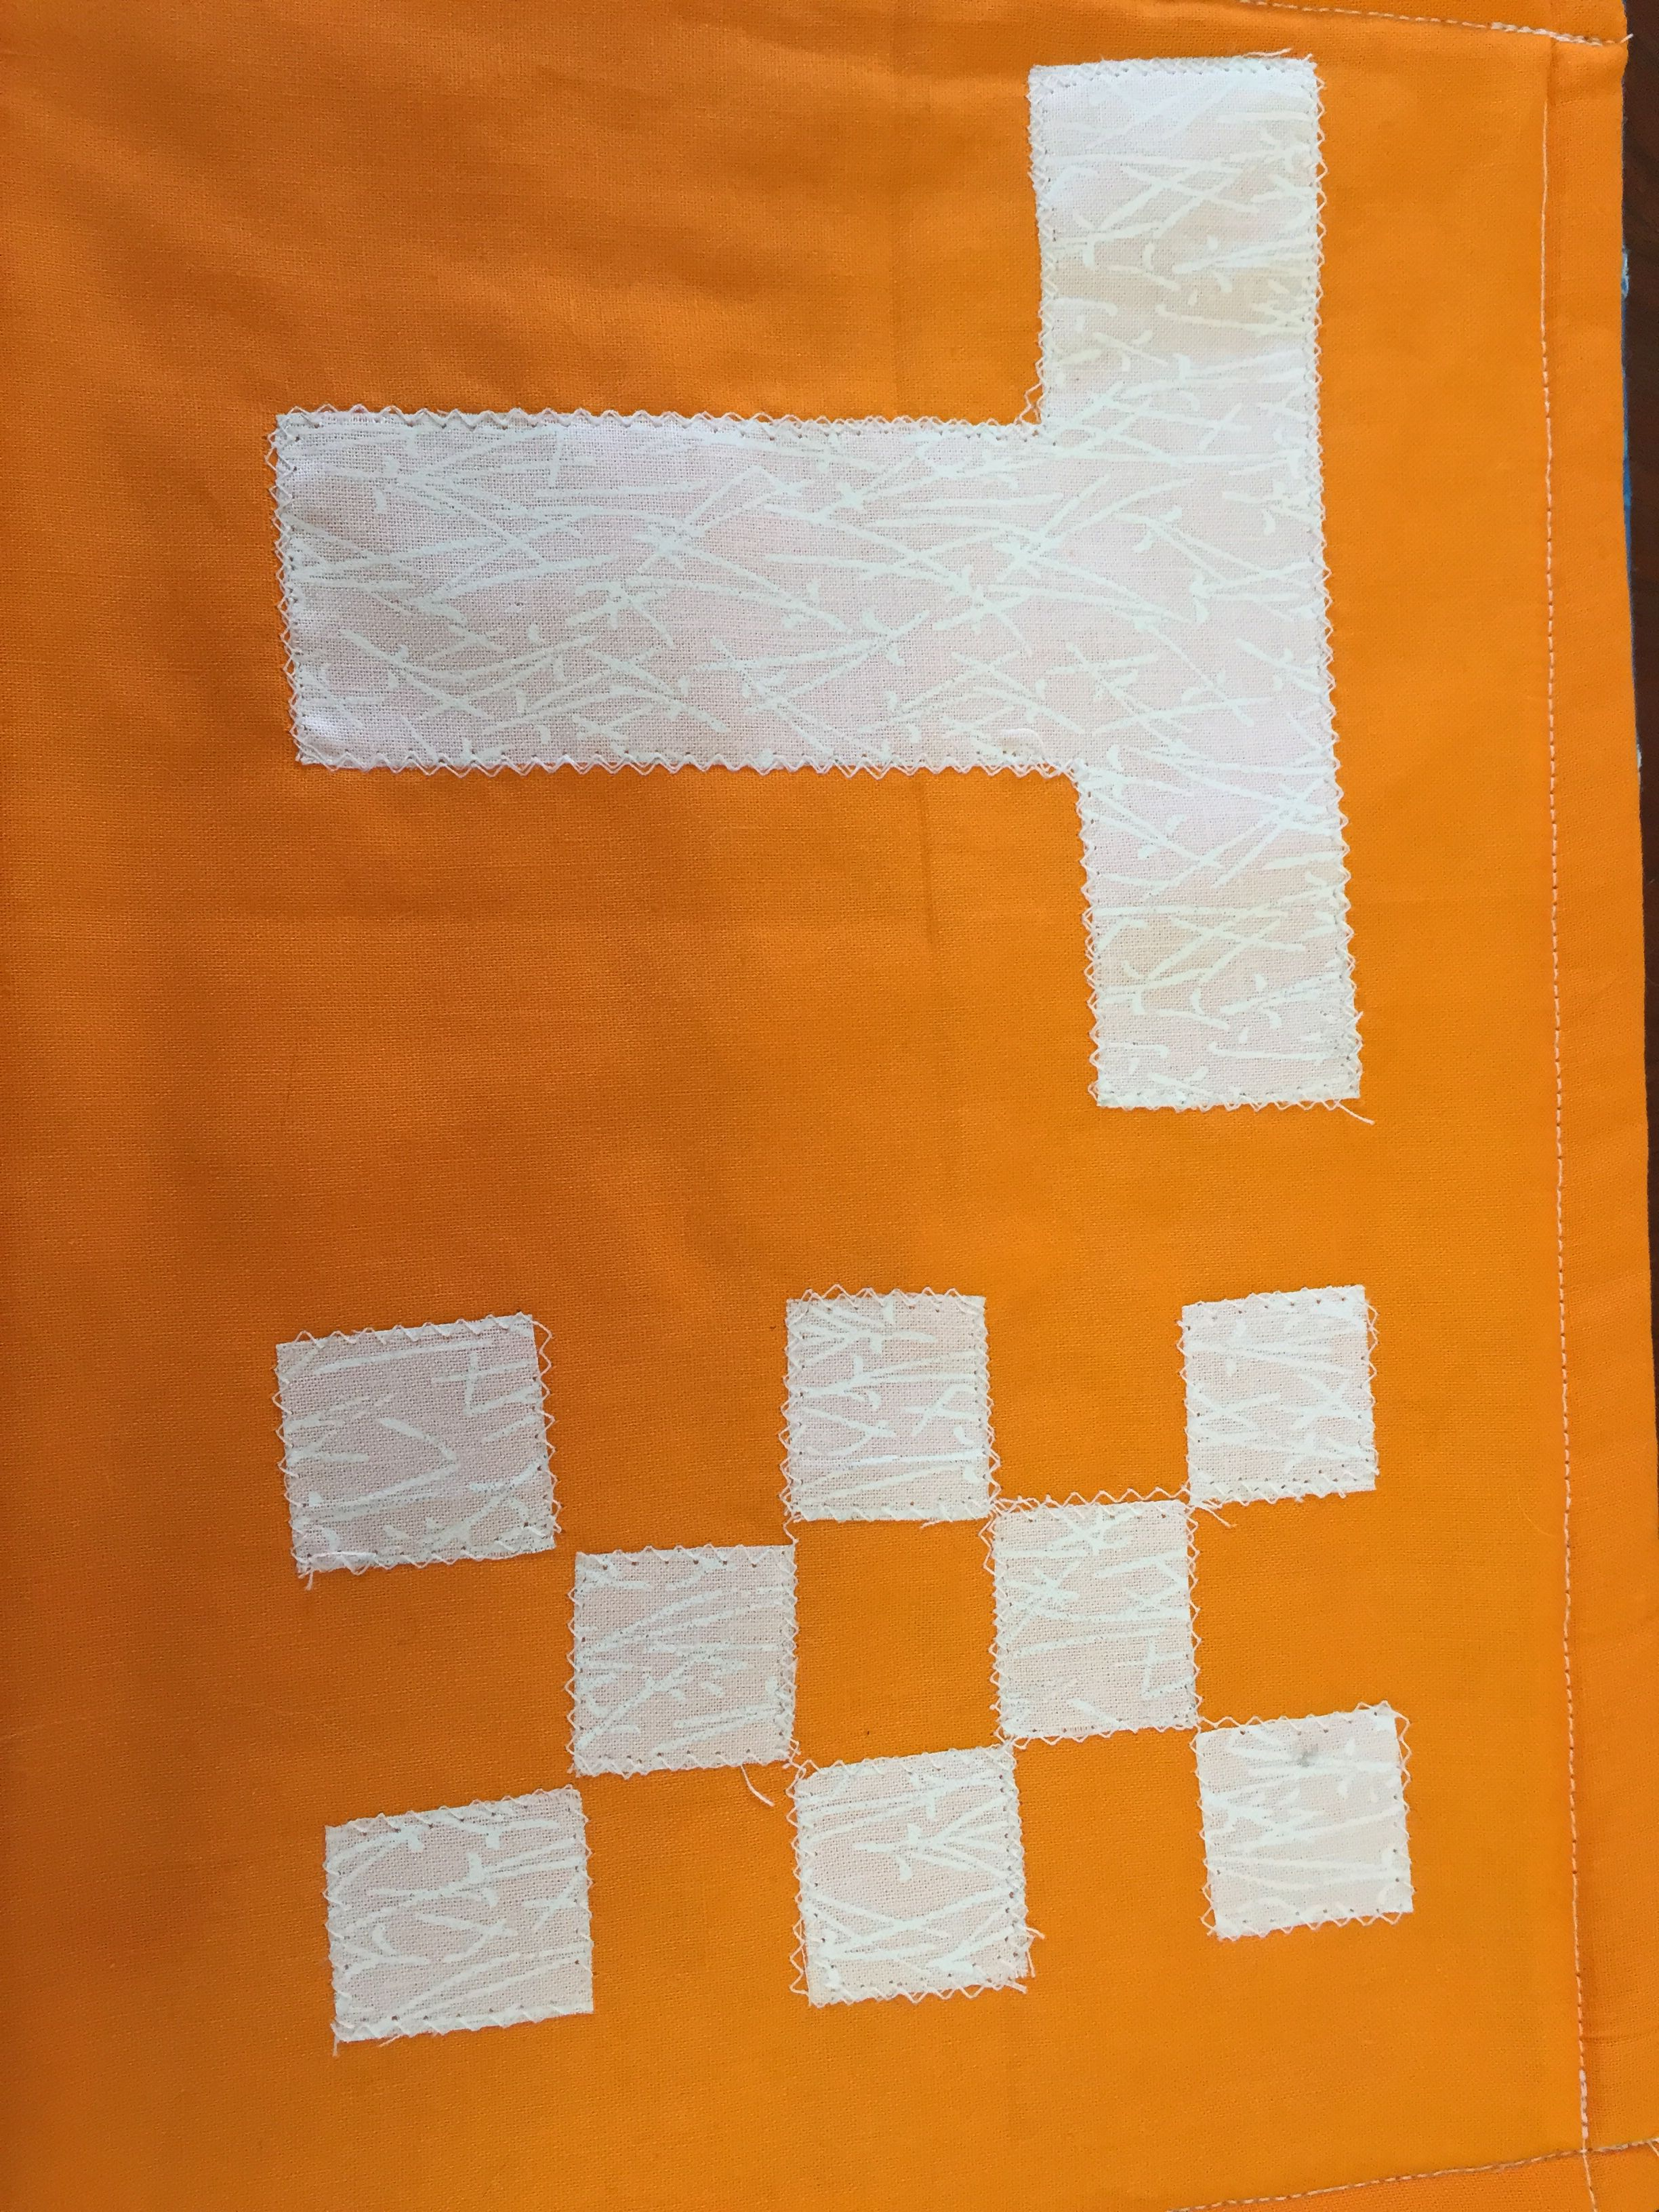 Quilted Mug Rug With Spoon Holder Pattern - Go ut